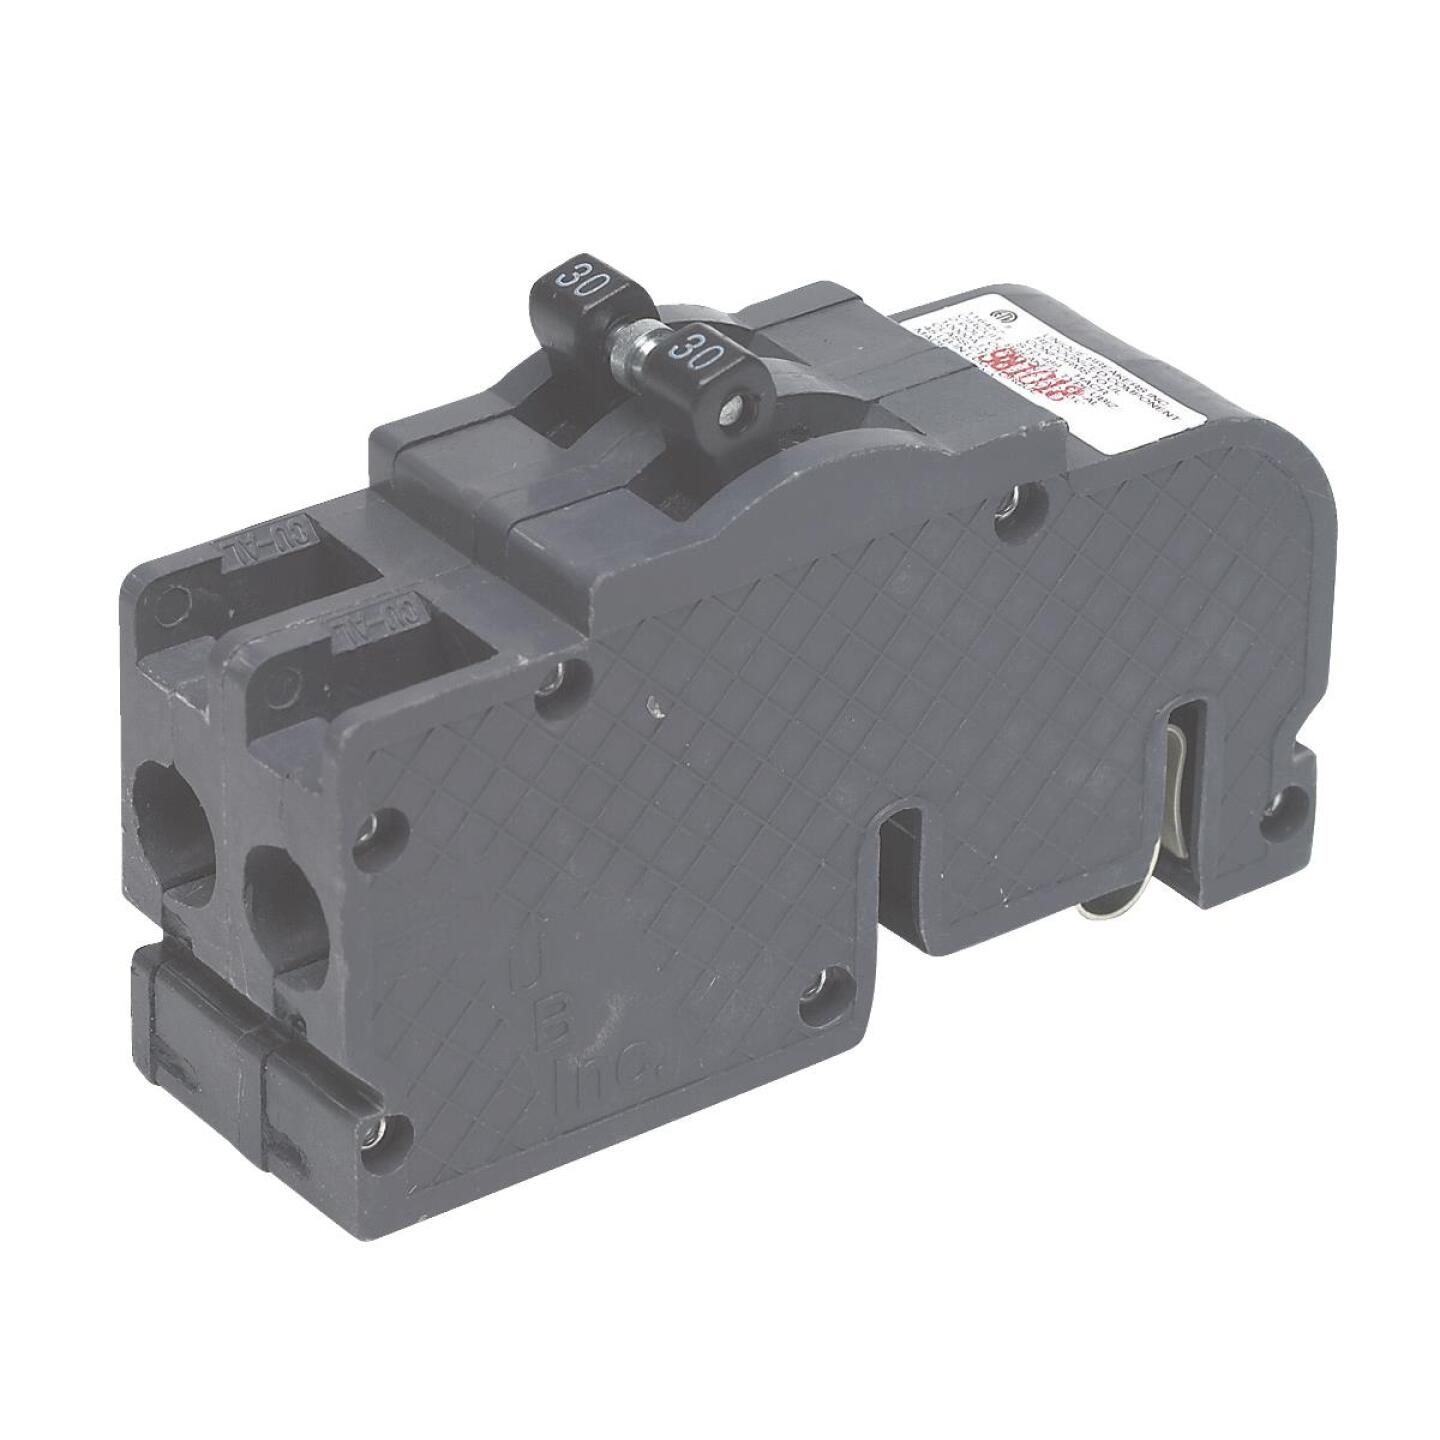 Connecticut Electric 60A Double-Pole Standard Trip Packaged Replacement Circuit Breaker For Zinsco Image 1